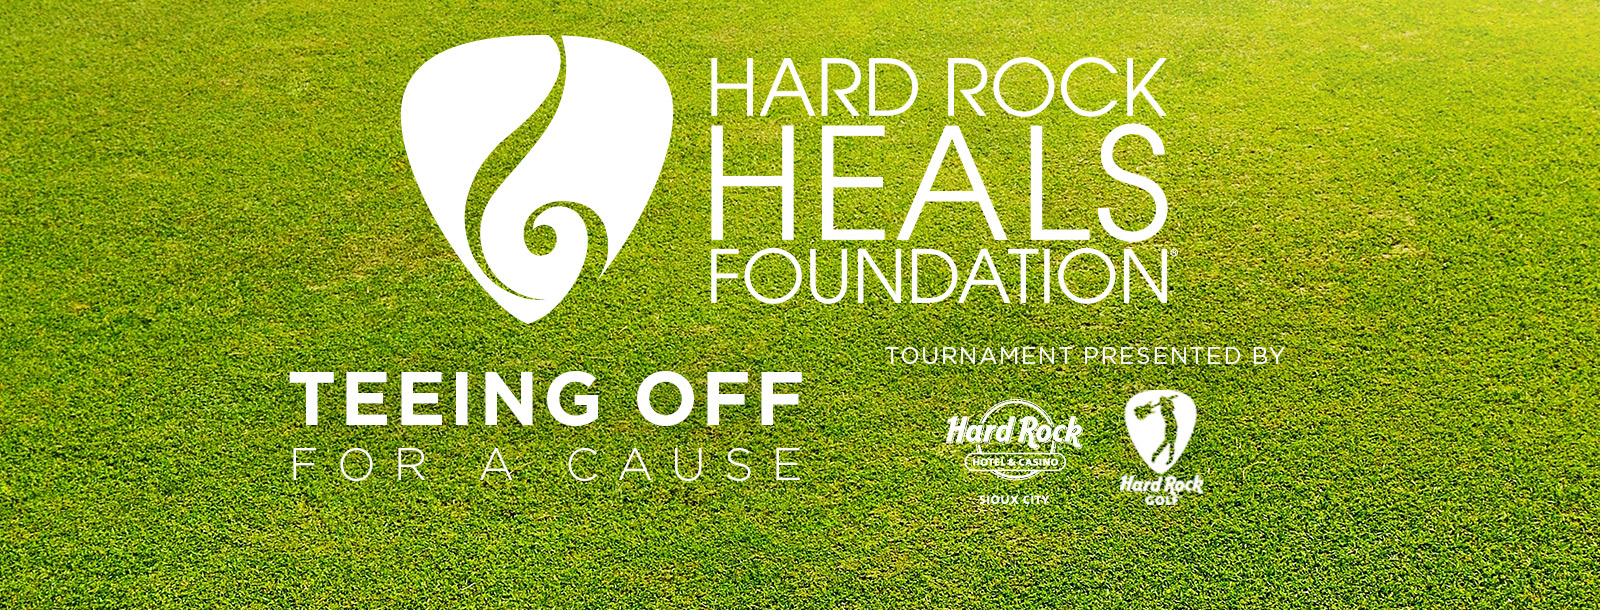 teeing off for a cause golf tournament